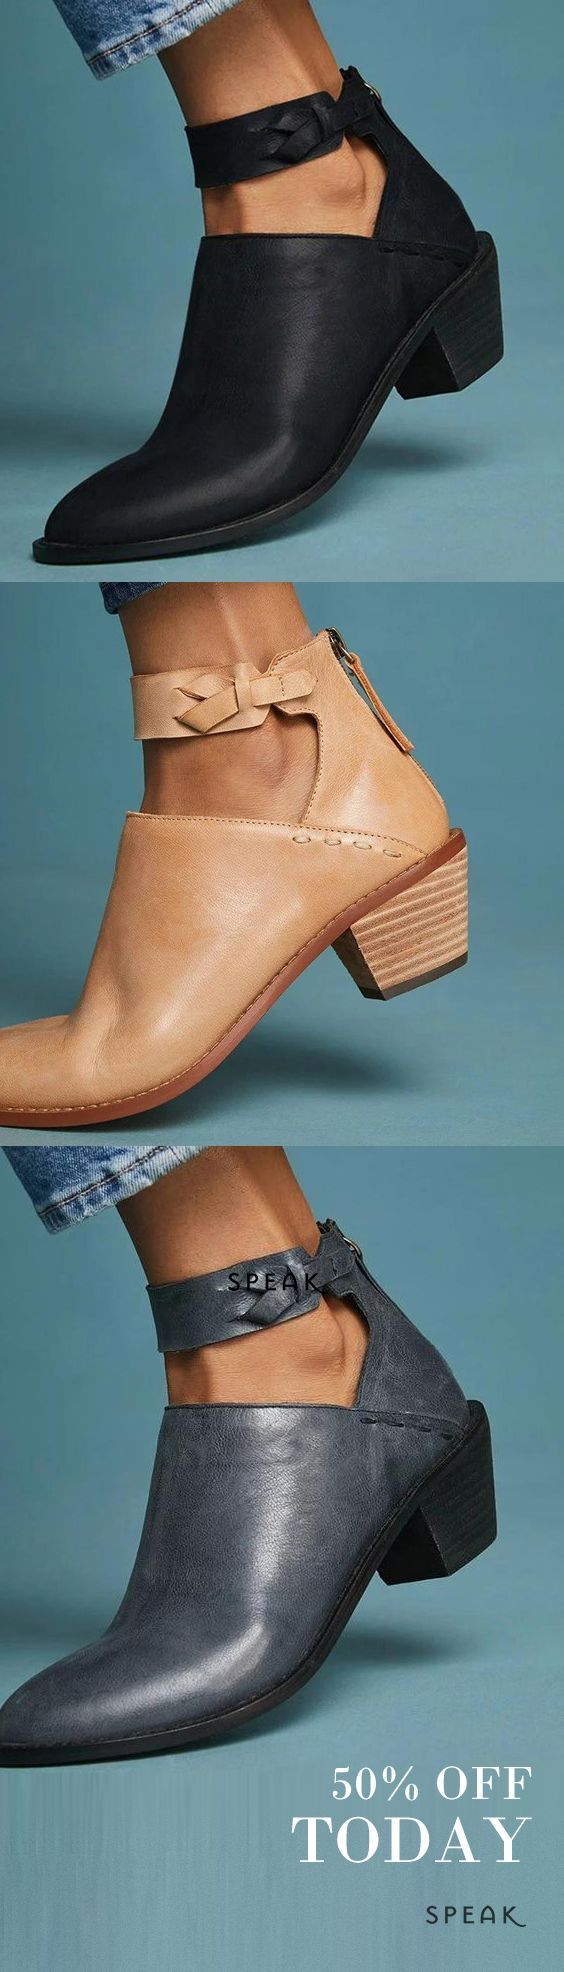 Ankle-Strap Heels - 50% off today. The cutest boots, heels, shoes, loafers and m... 1